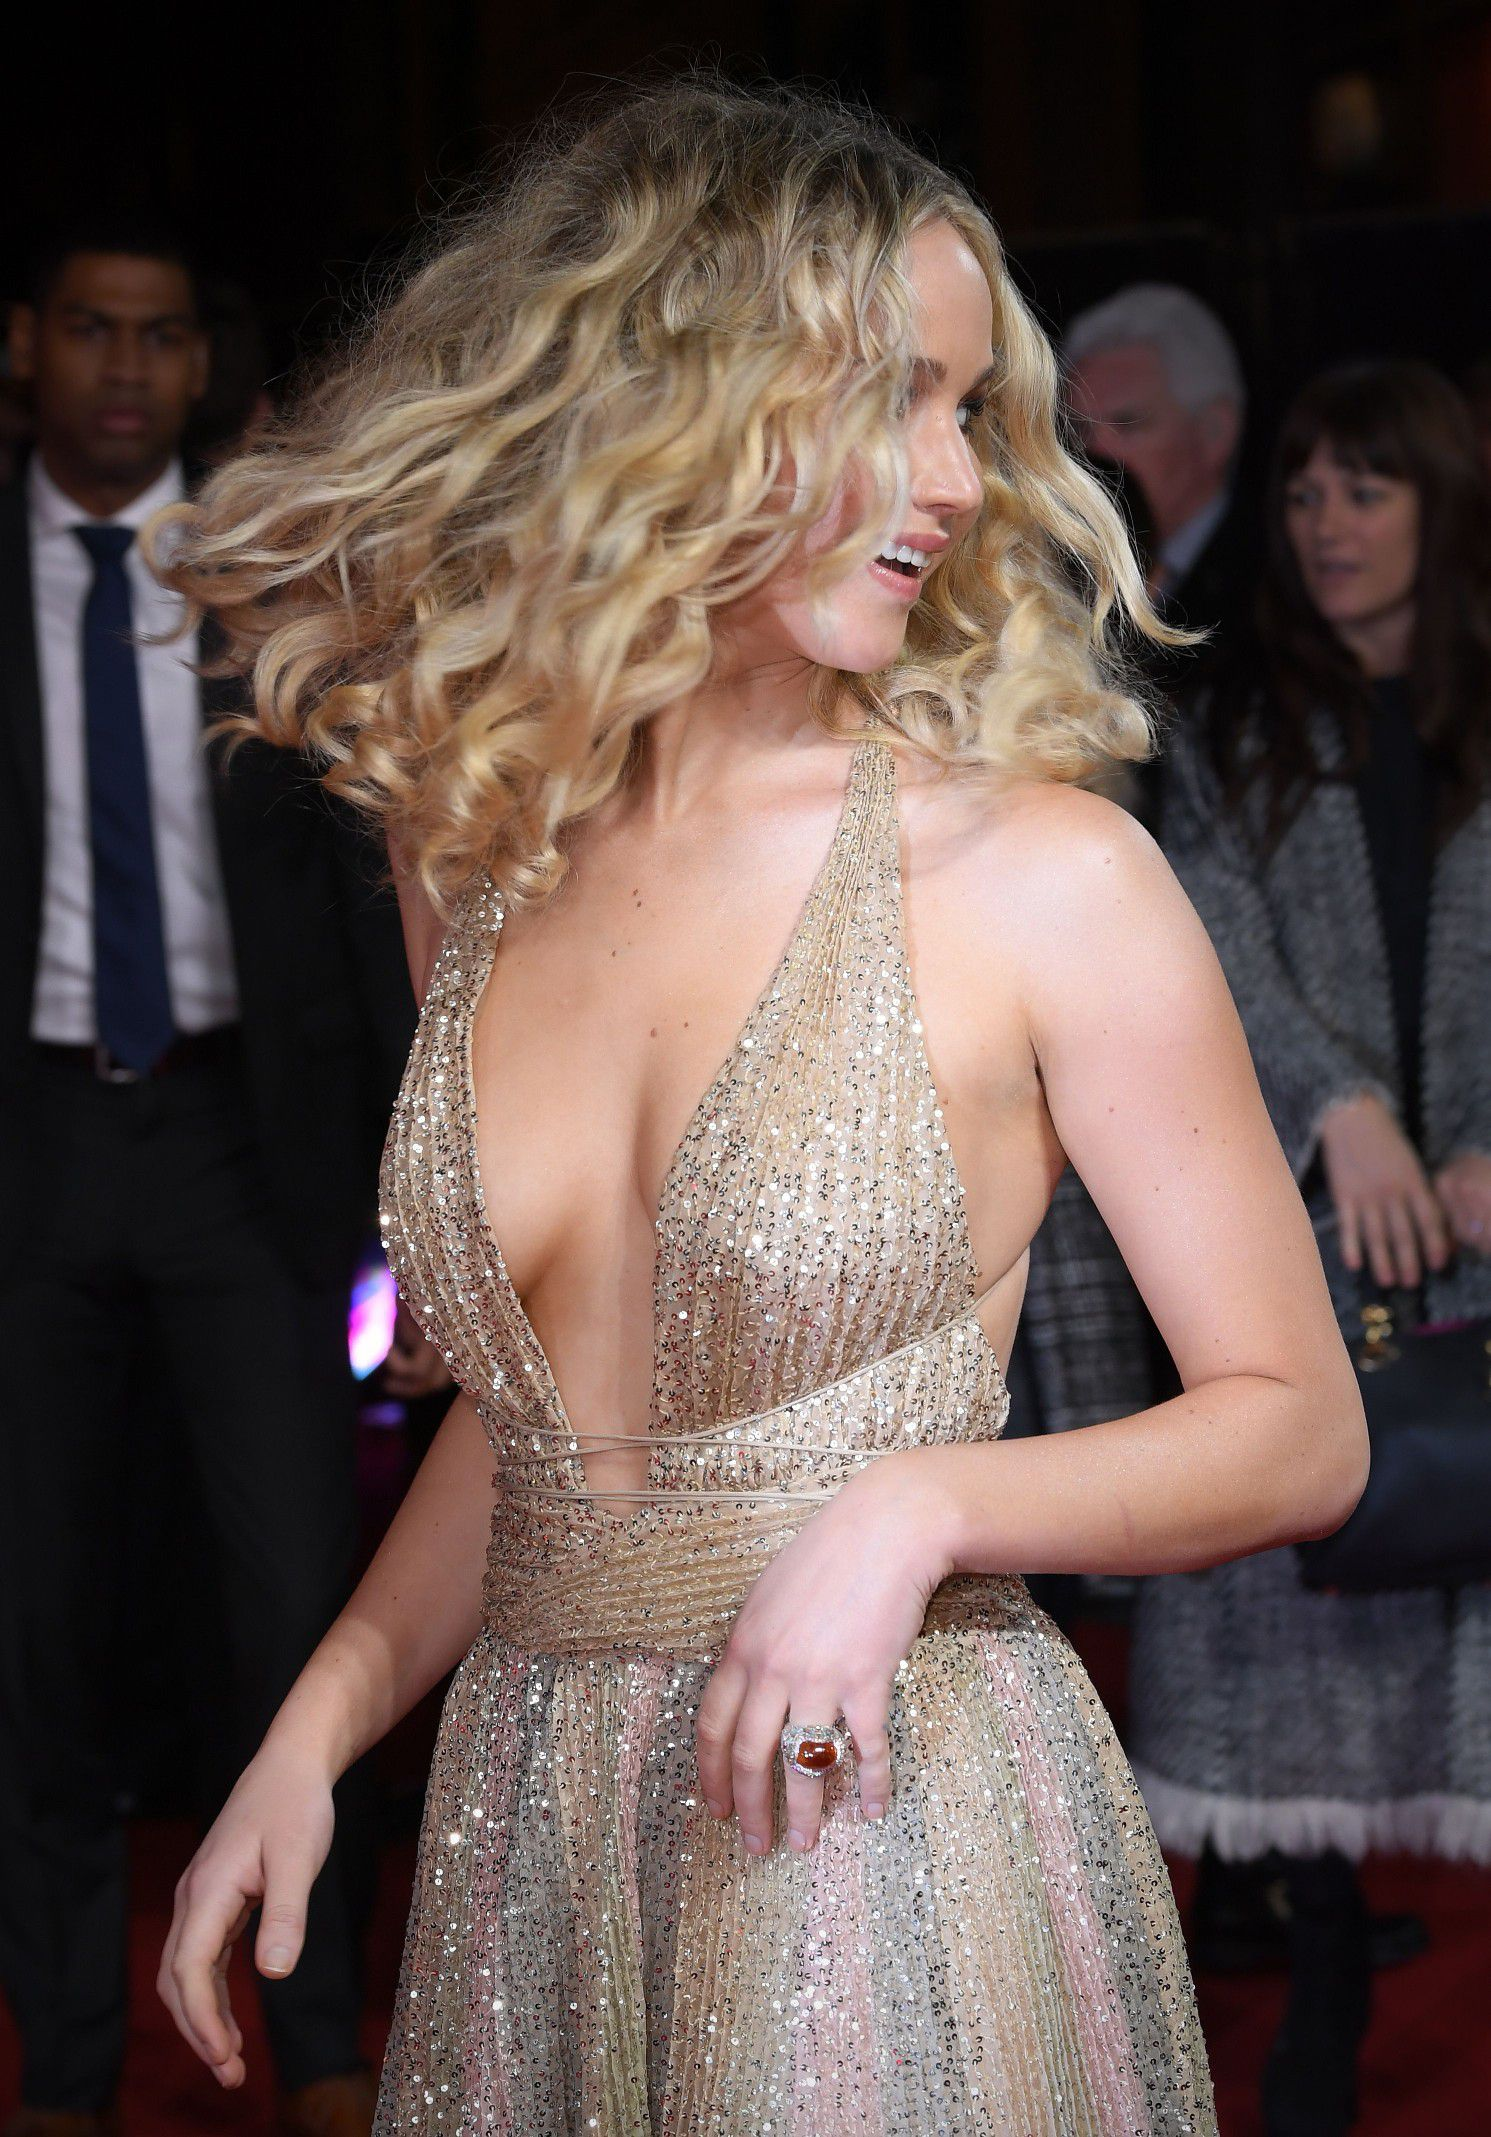 jennifer-lawrence-cleavage-at-red-sparrow-premiere-in-london-9013